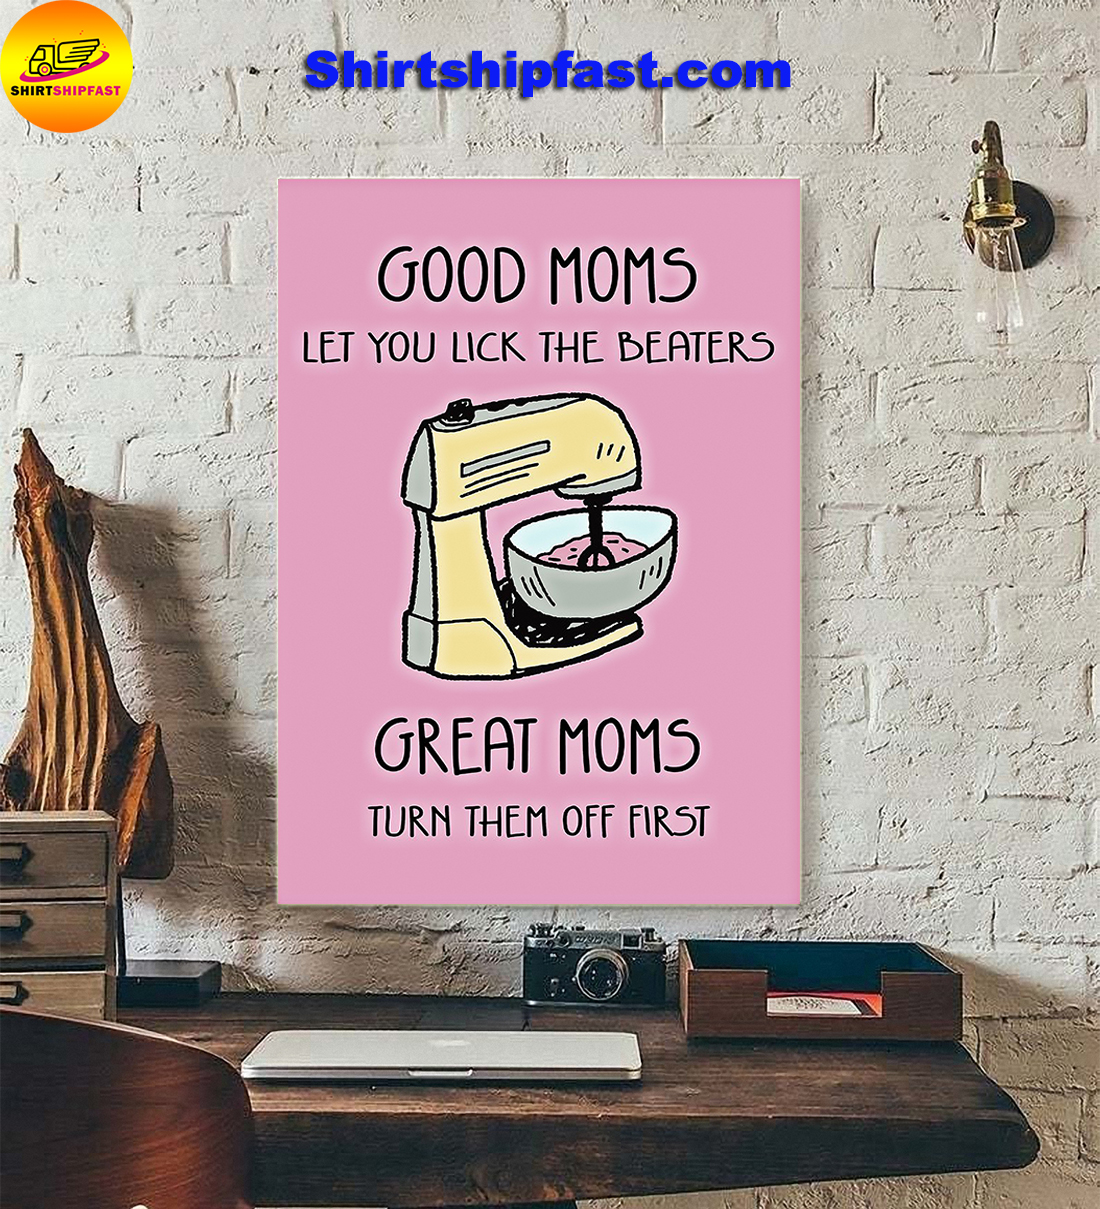 Mixer Good moms let you lick the beaters great moms turn them off first poster - Picture 1